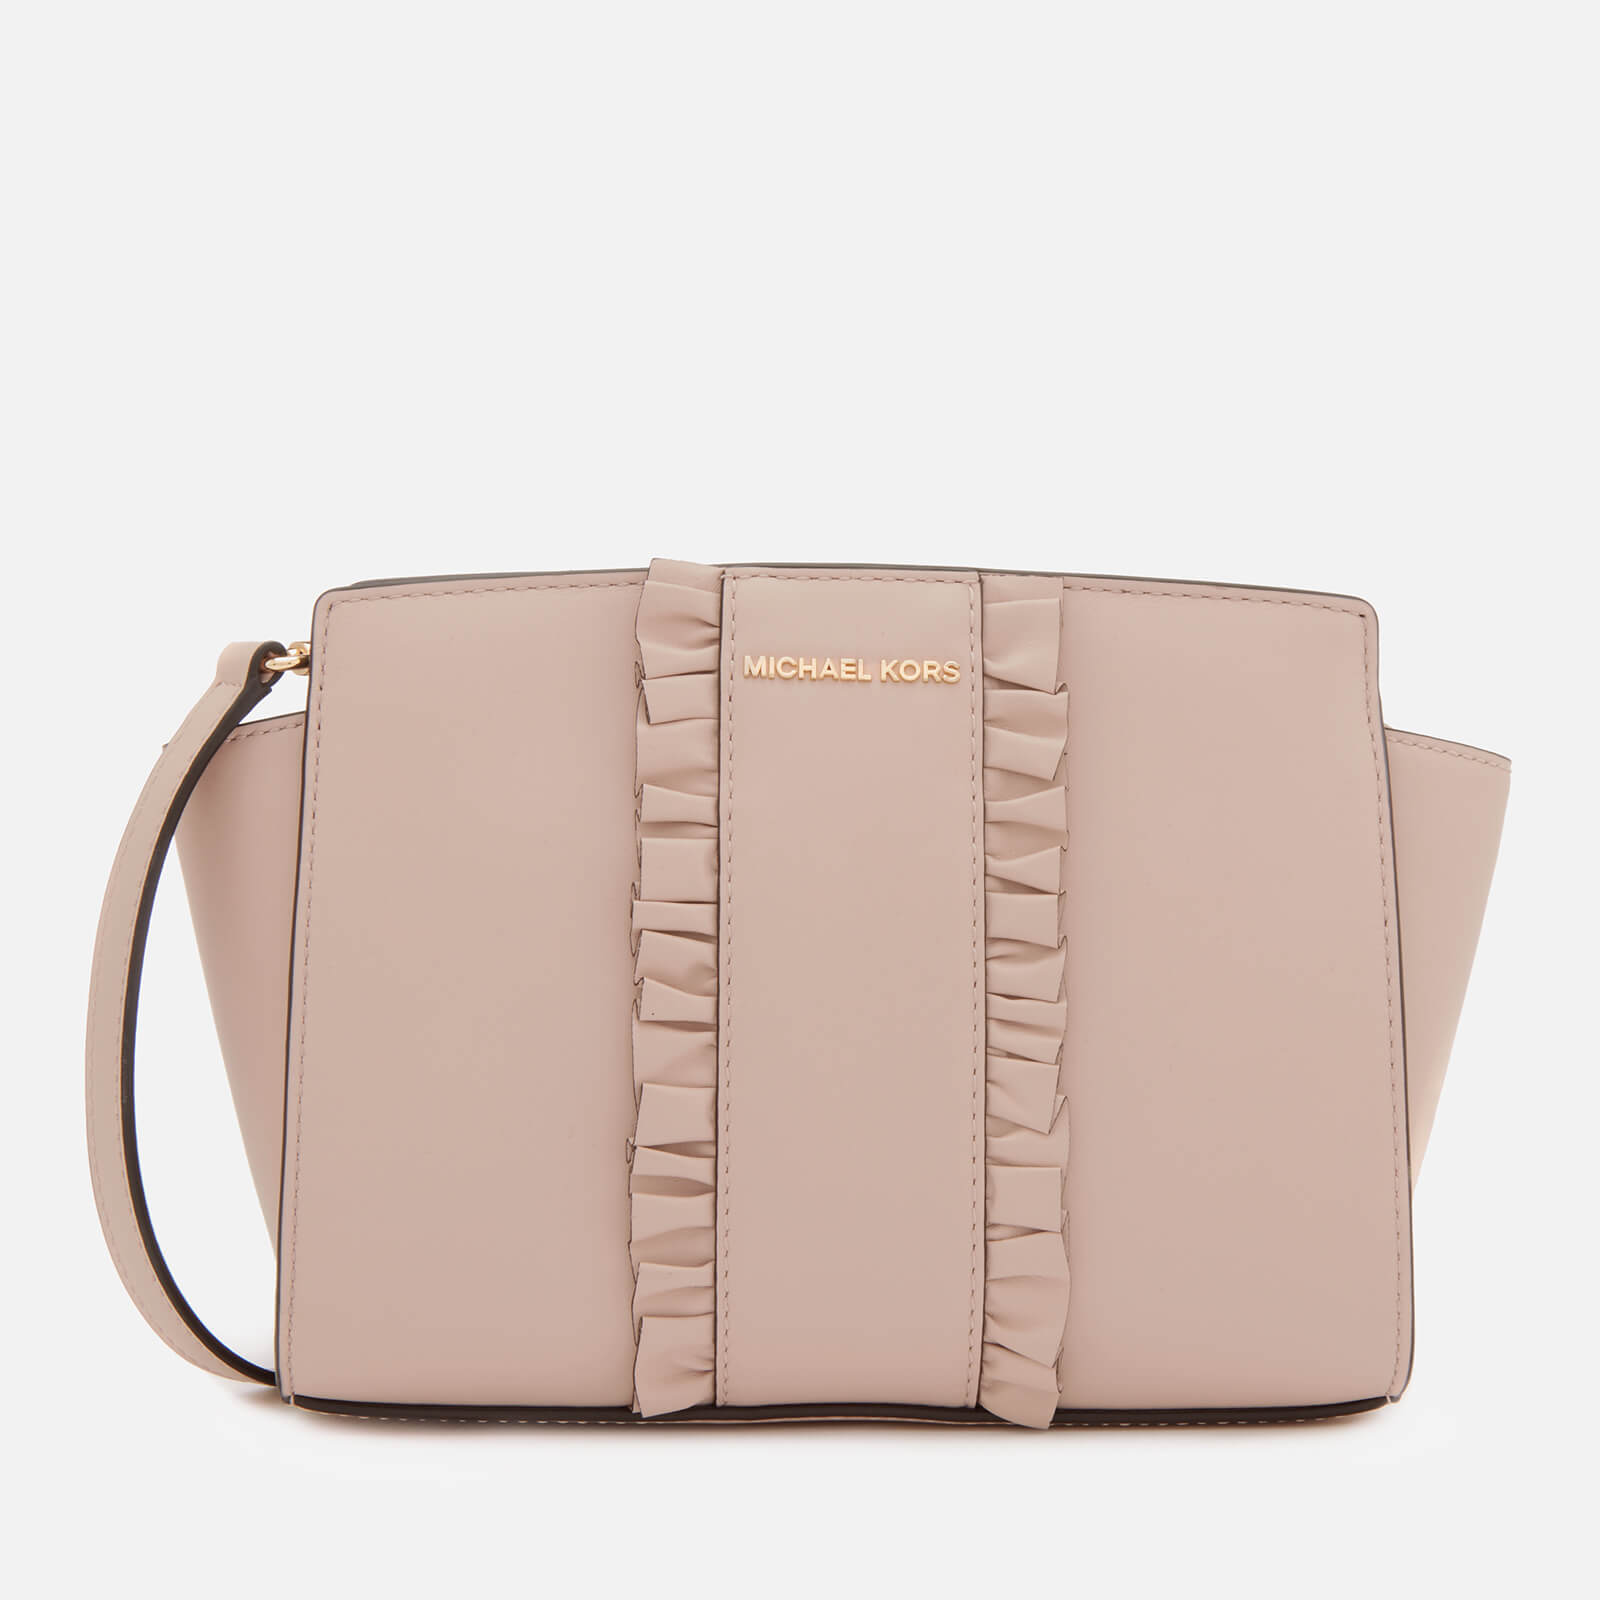 0ec231790b71 MICHAEL MICHAEL KORS Women's Selma Medium Messenger Bag - Soft Pink - Free  UK Delivery over £50